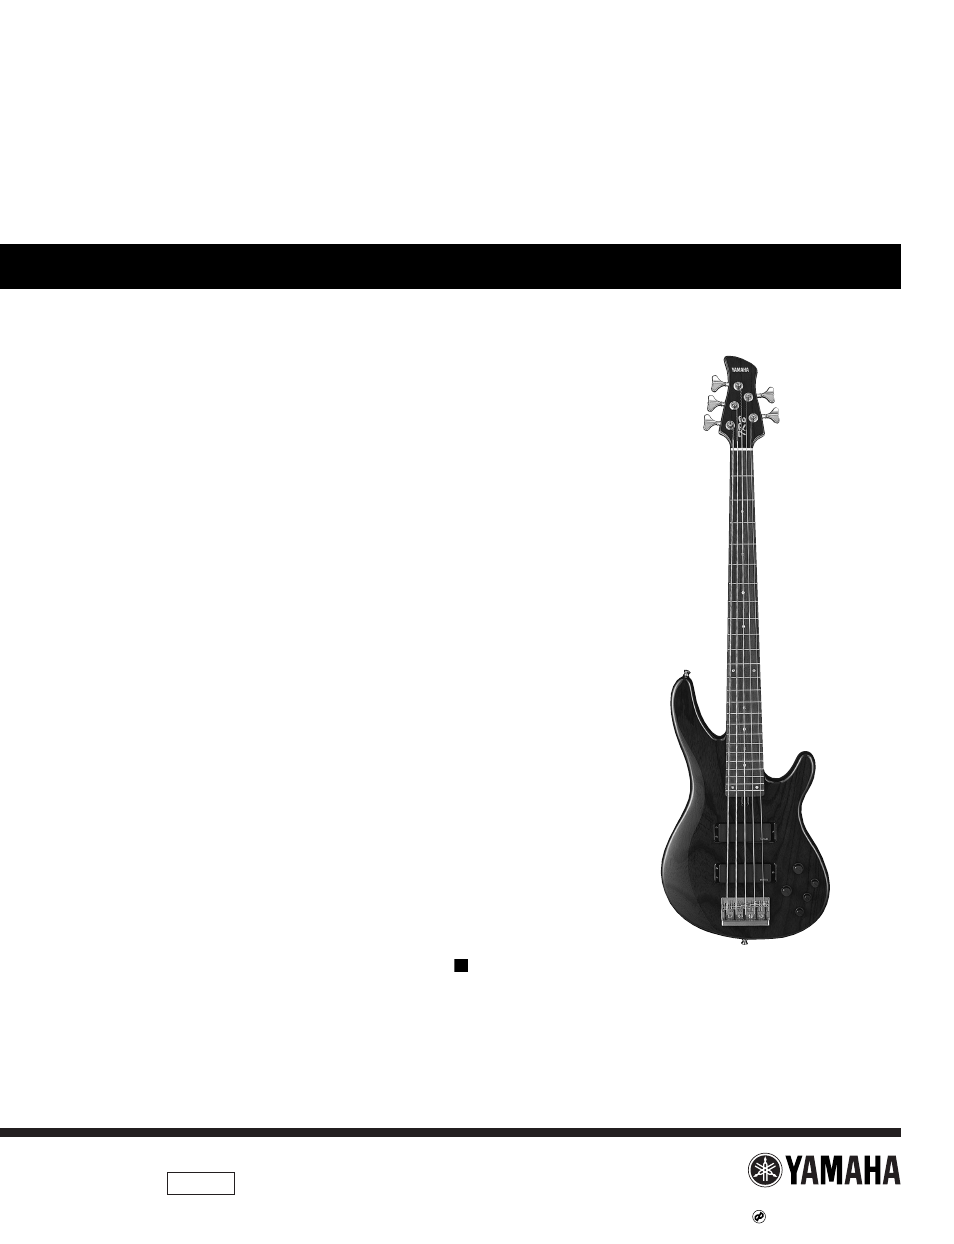 Yamaha Electric Bass Guitar Wiring Diagram Archive Of Automotive Images Gallery Trb 5ii User Manual 8 Pages Also For Rh Manualsdir Com